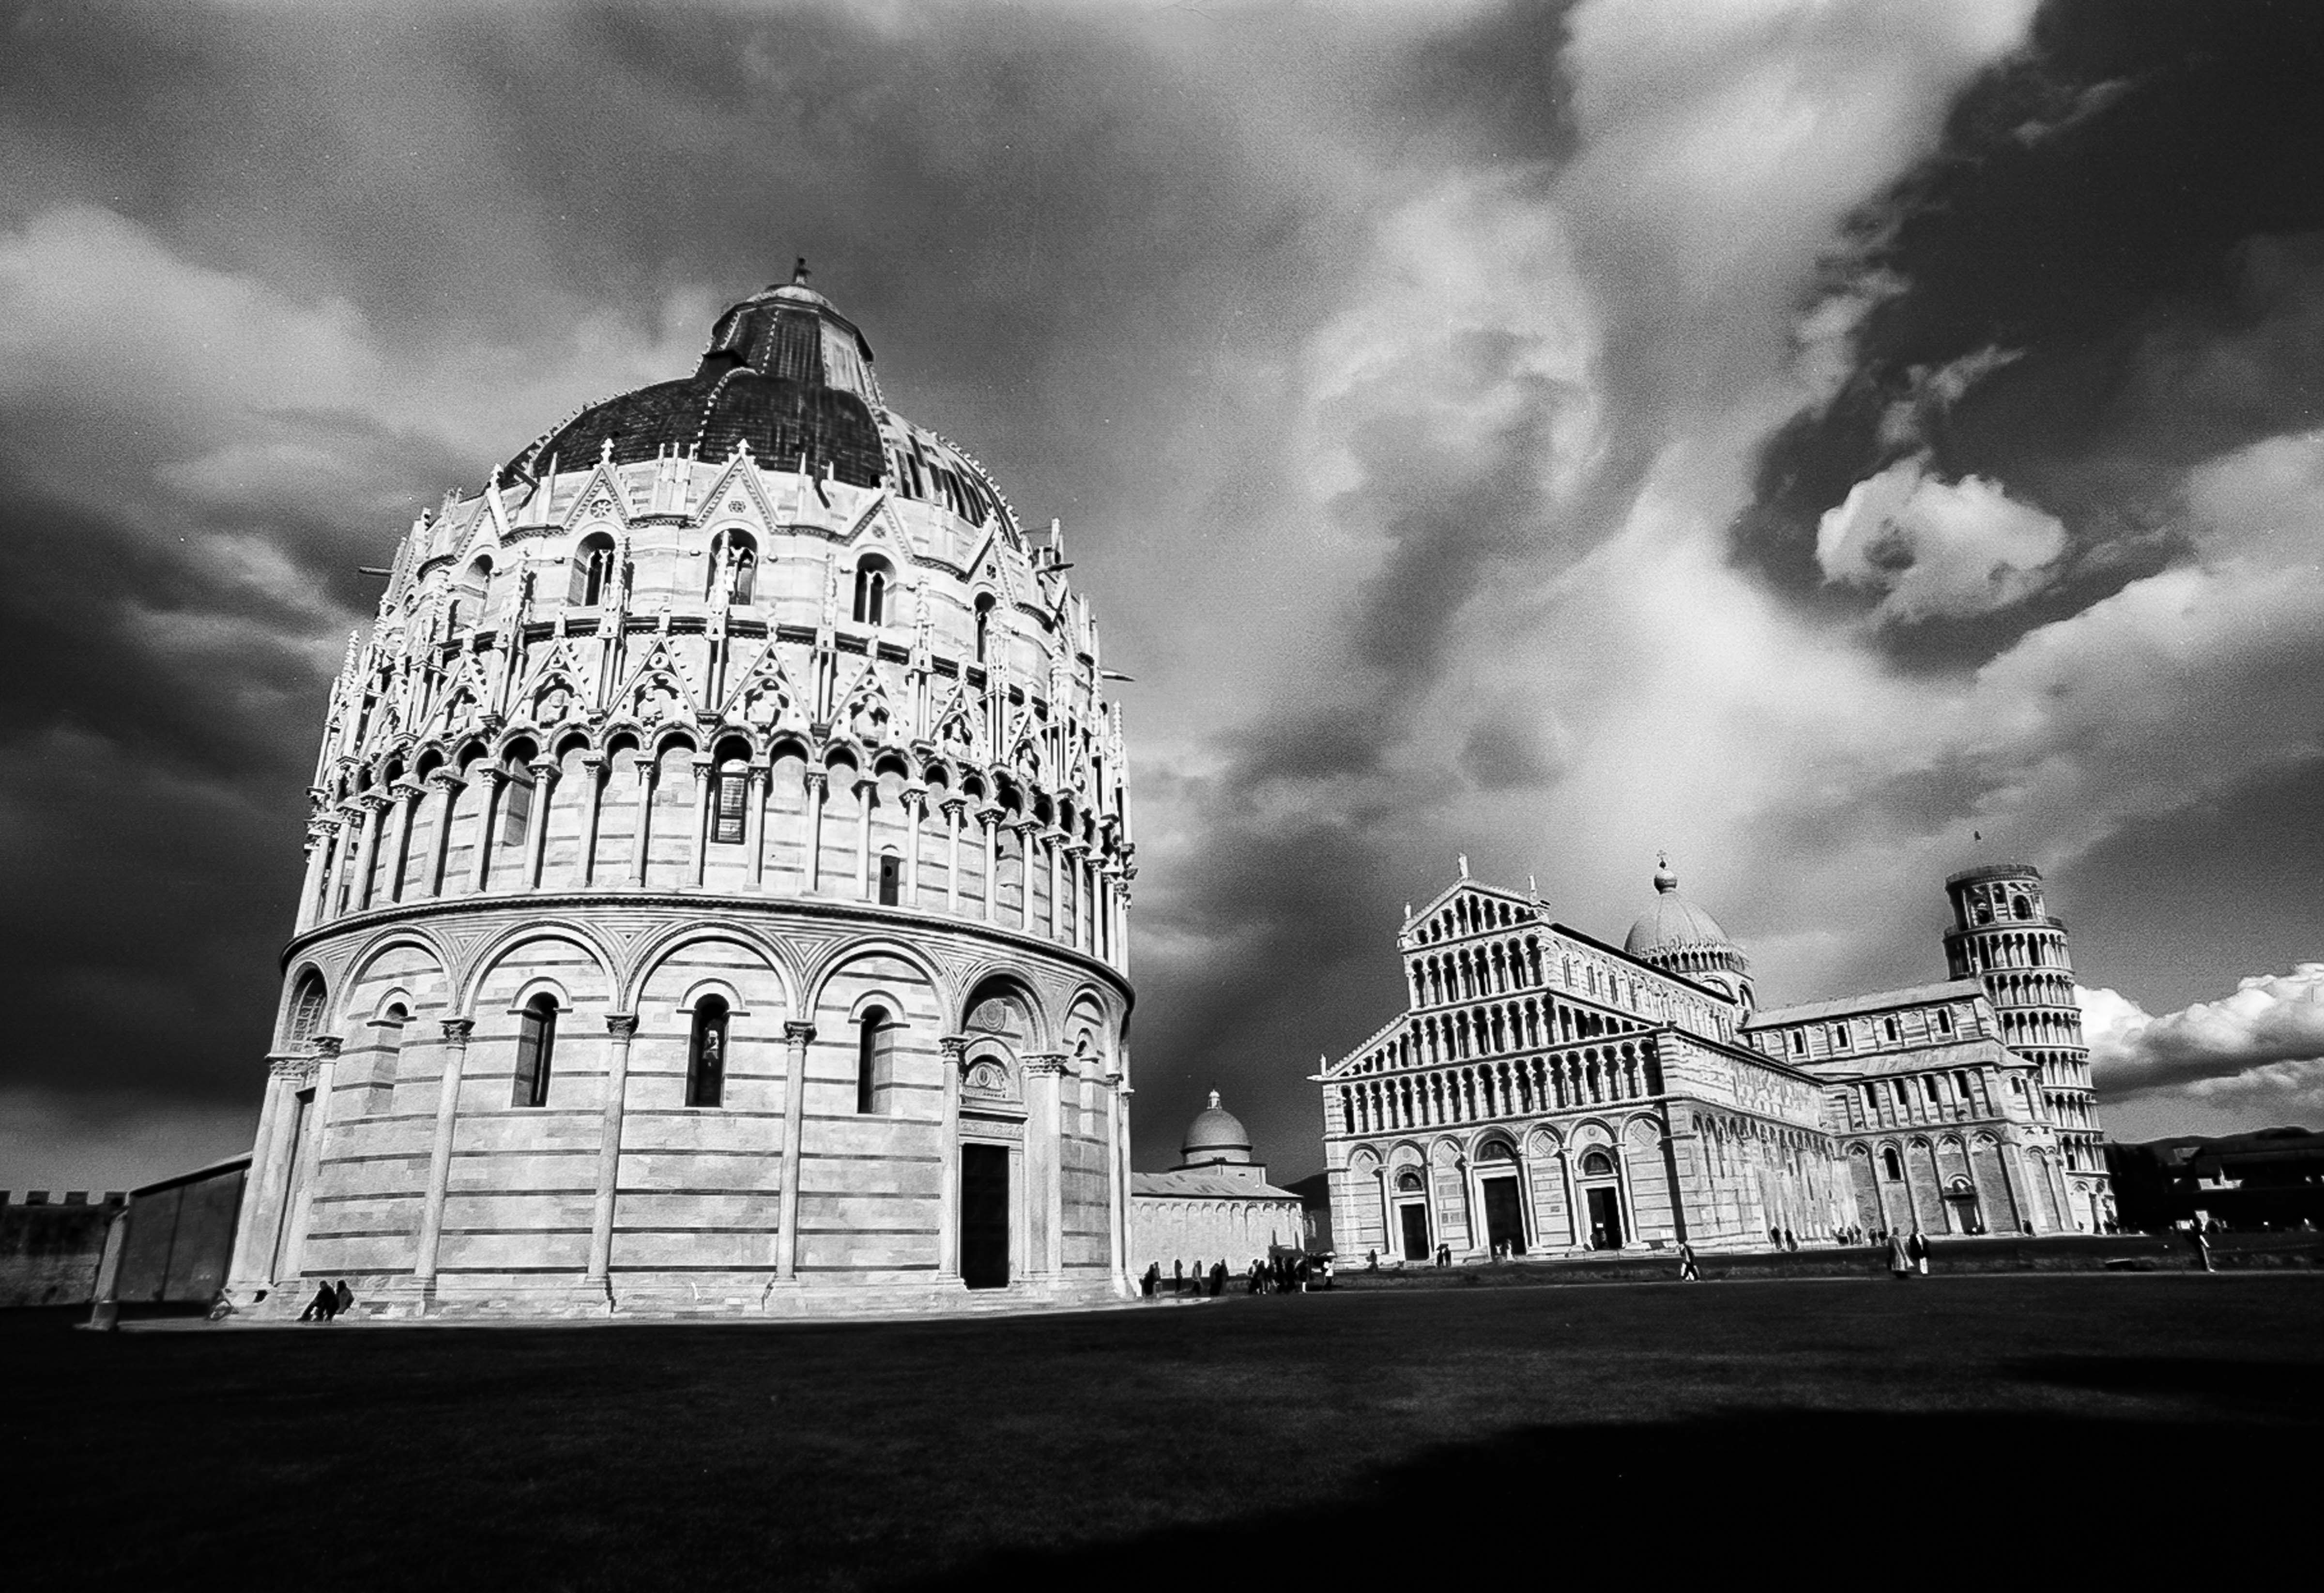 Italy, Pisa, a Different View, 2003